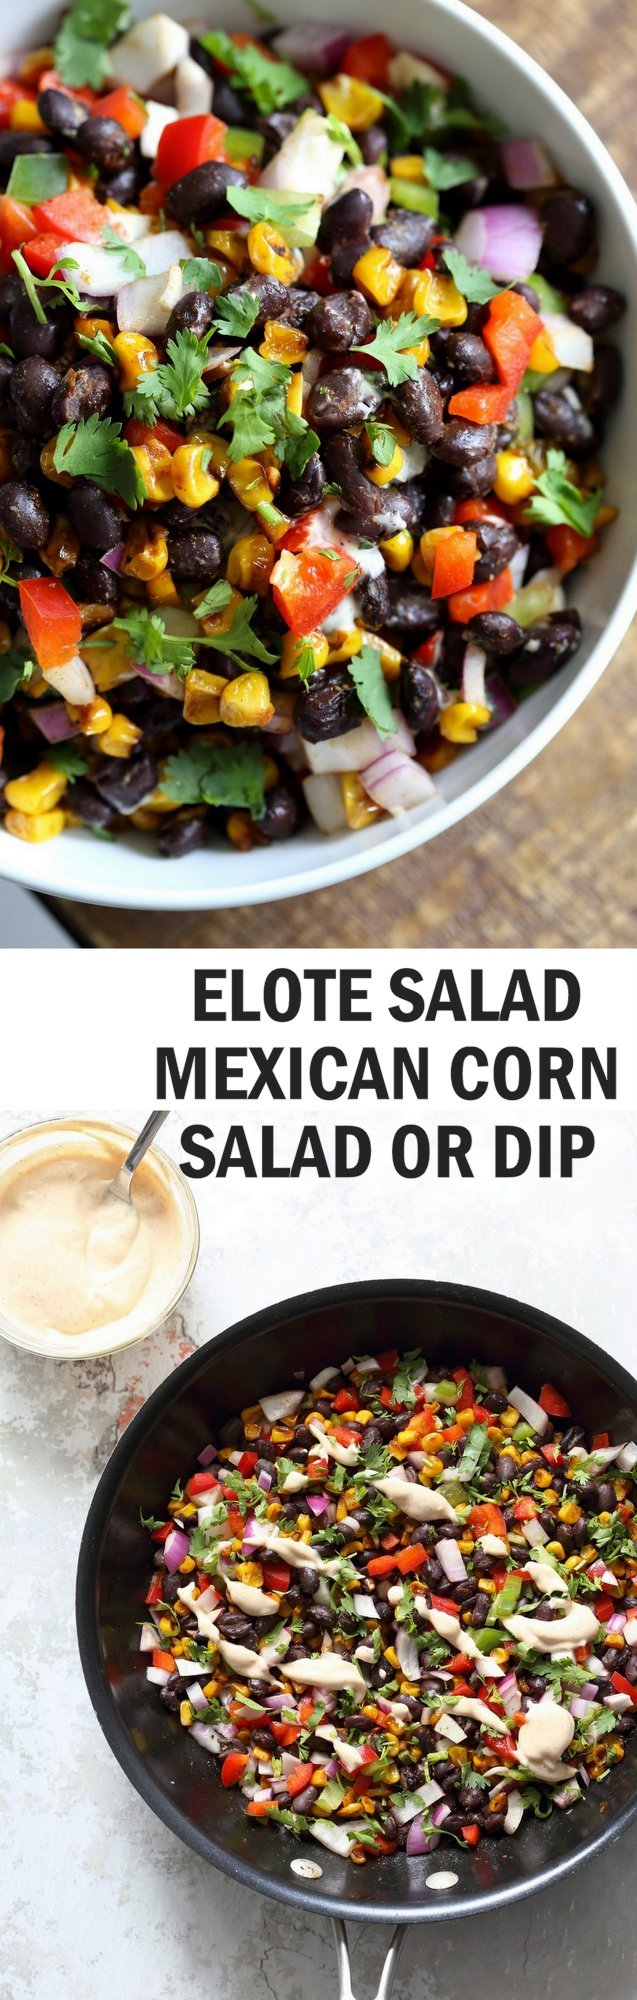 Mexican Street Corn Salad with Black Beans and Chipotle Mayo. Elote Bean Salad. Serve with Tortilla Chips. #Vegan #Glutenfree #Nutfree #soyfree #Recipe #veganricha | VeganRicha.com